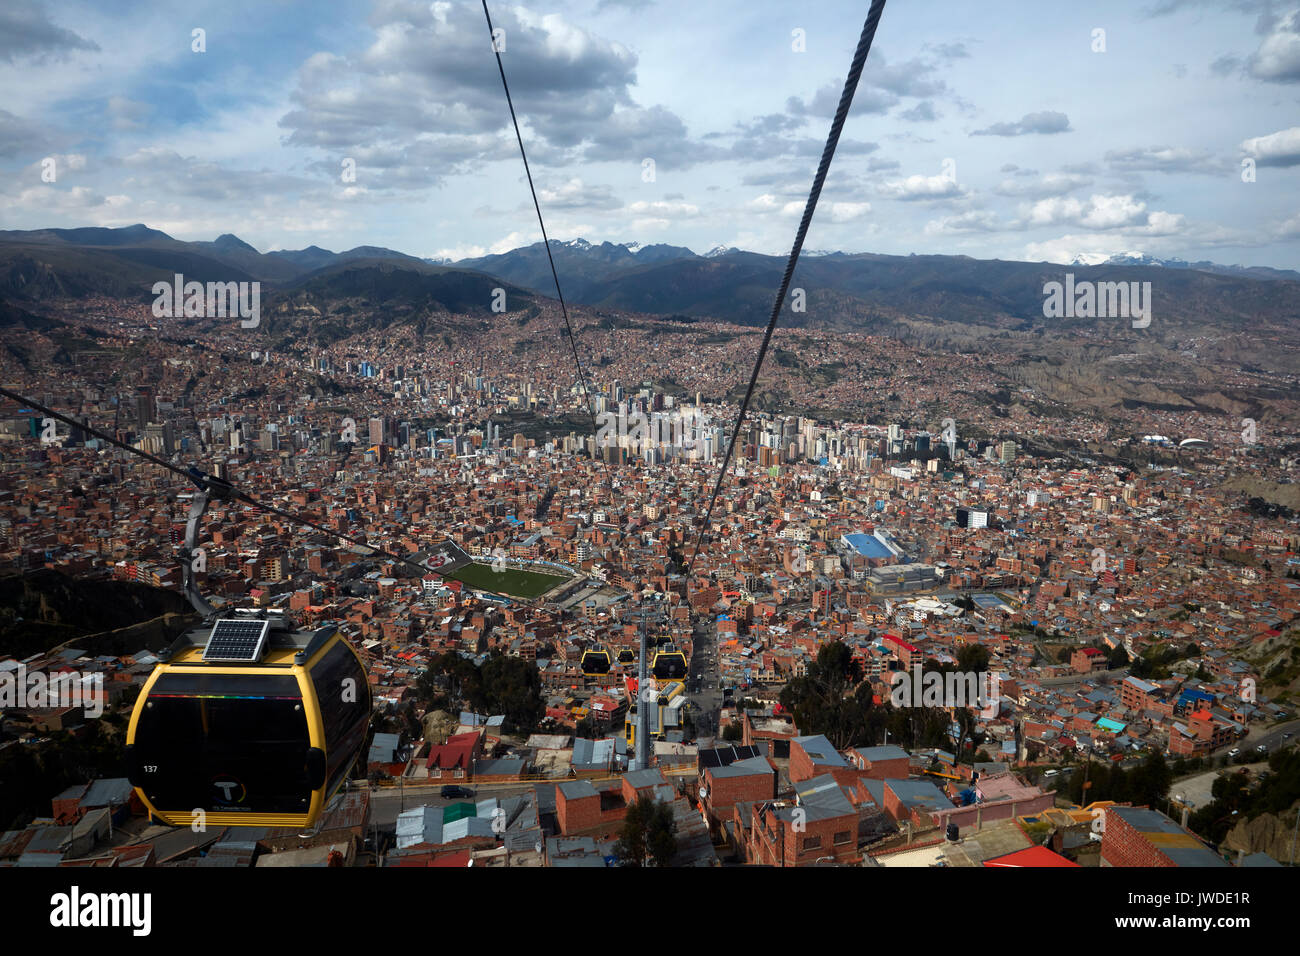 Teleferico cable car network, La Paz, Bolivia, South America Stock Photo